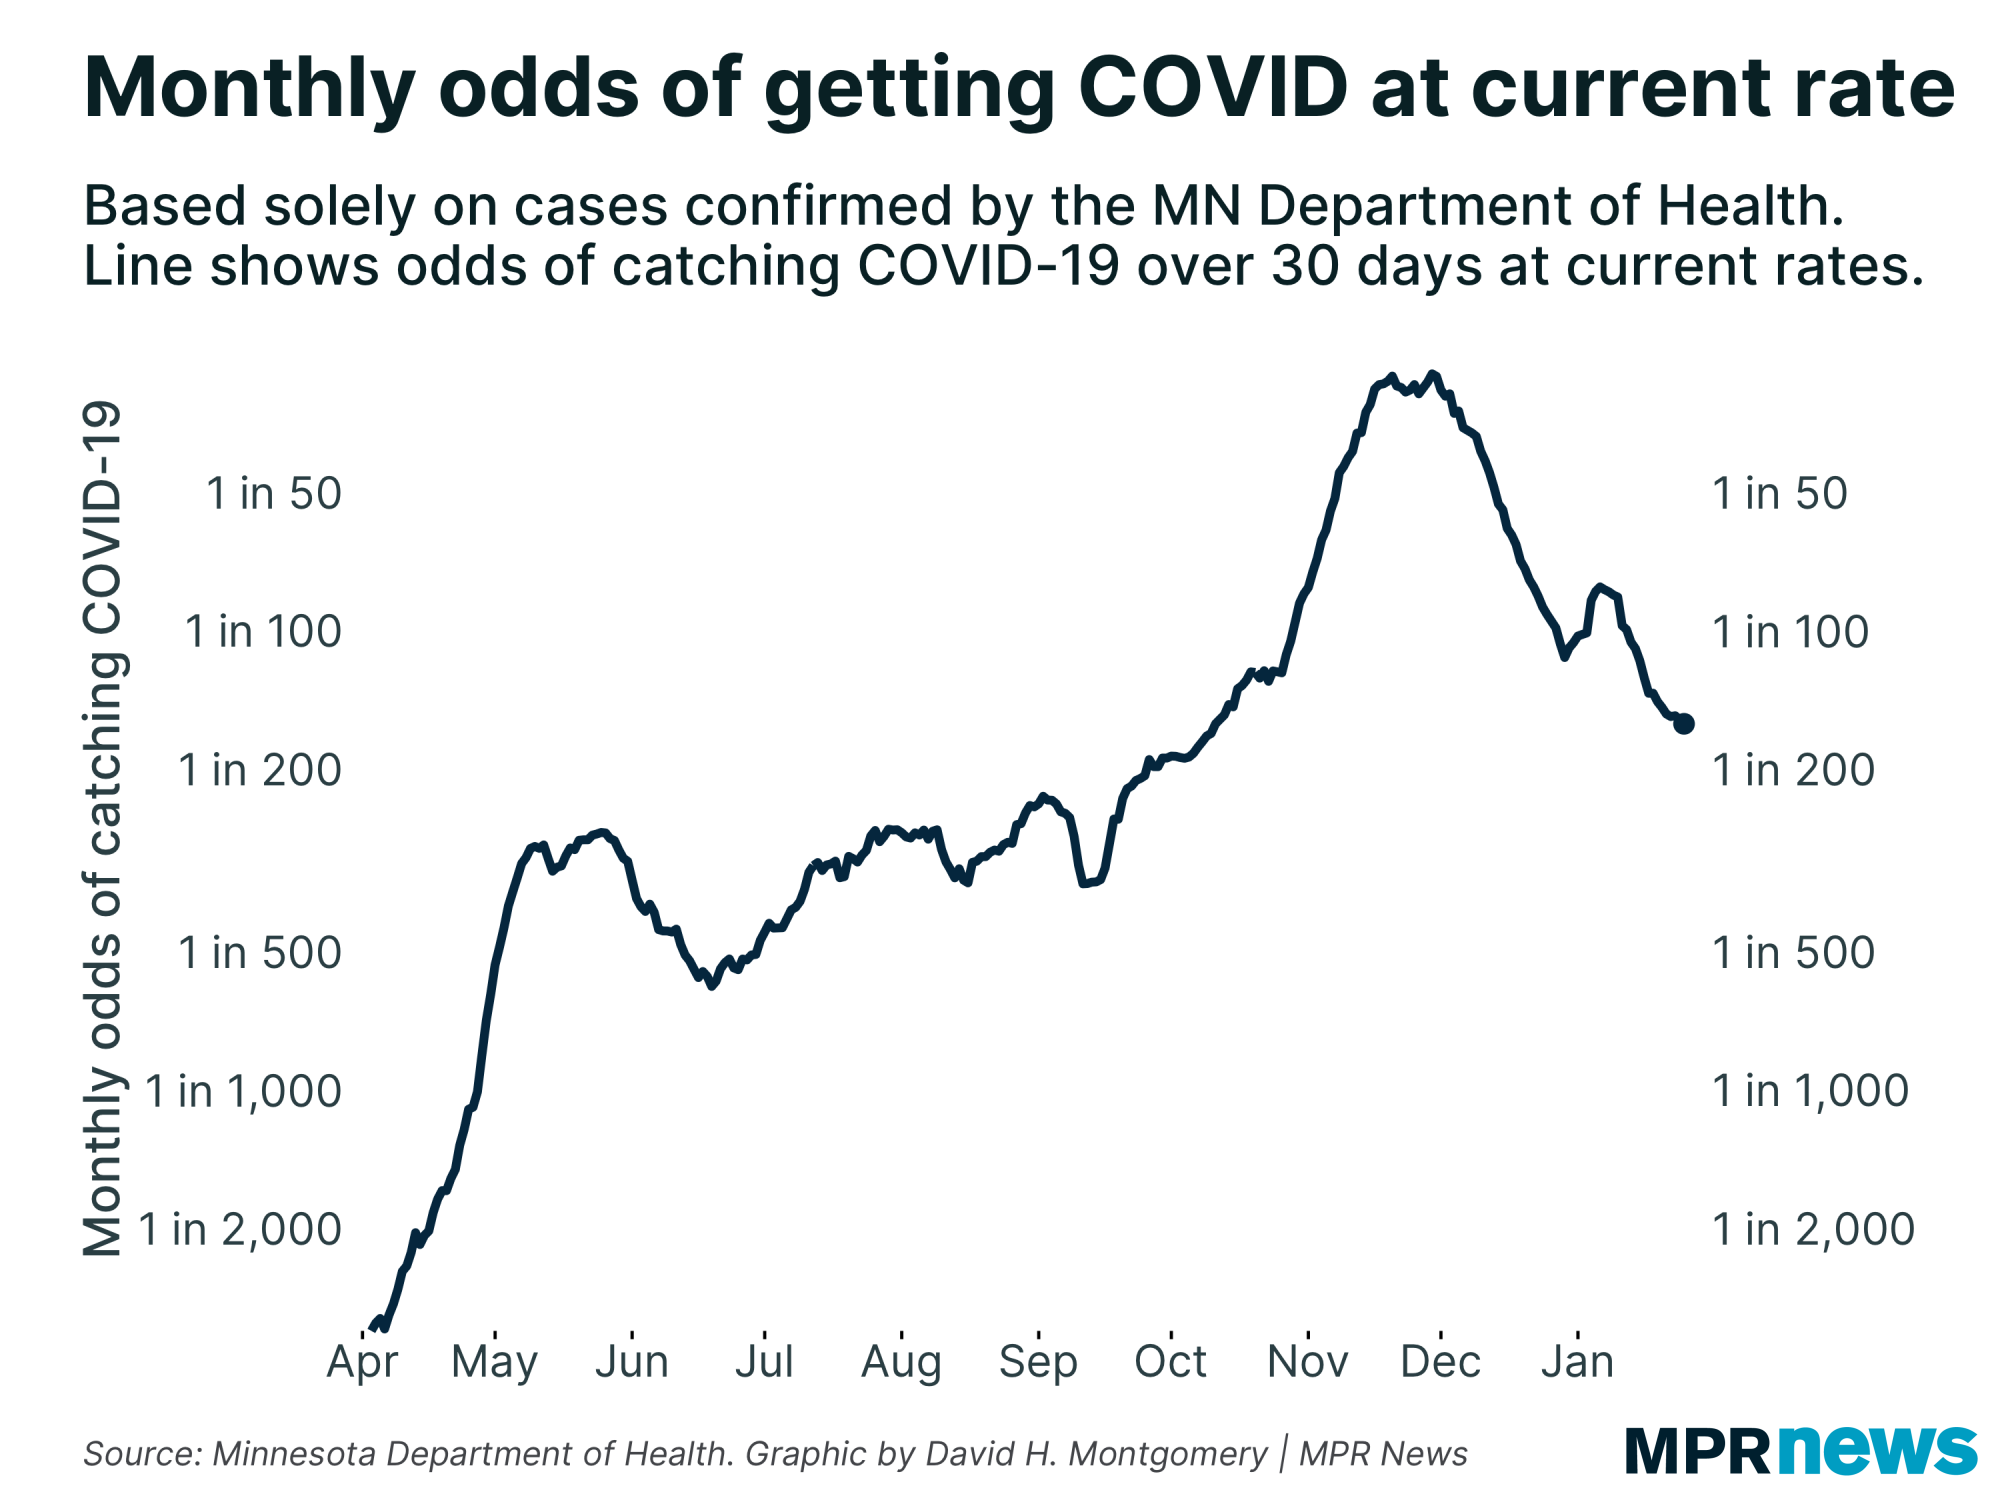 Monthly odds of getting COVID-19 at current infection rate